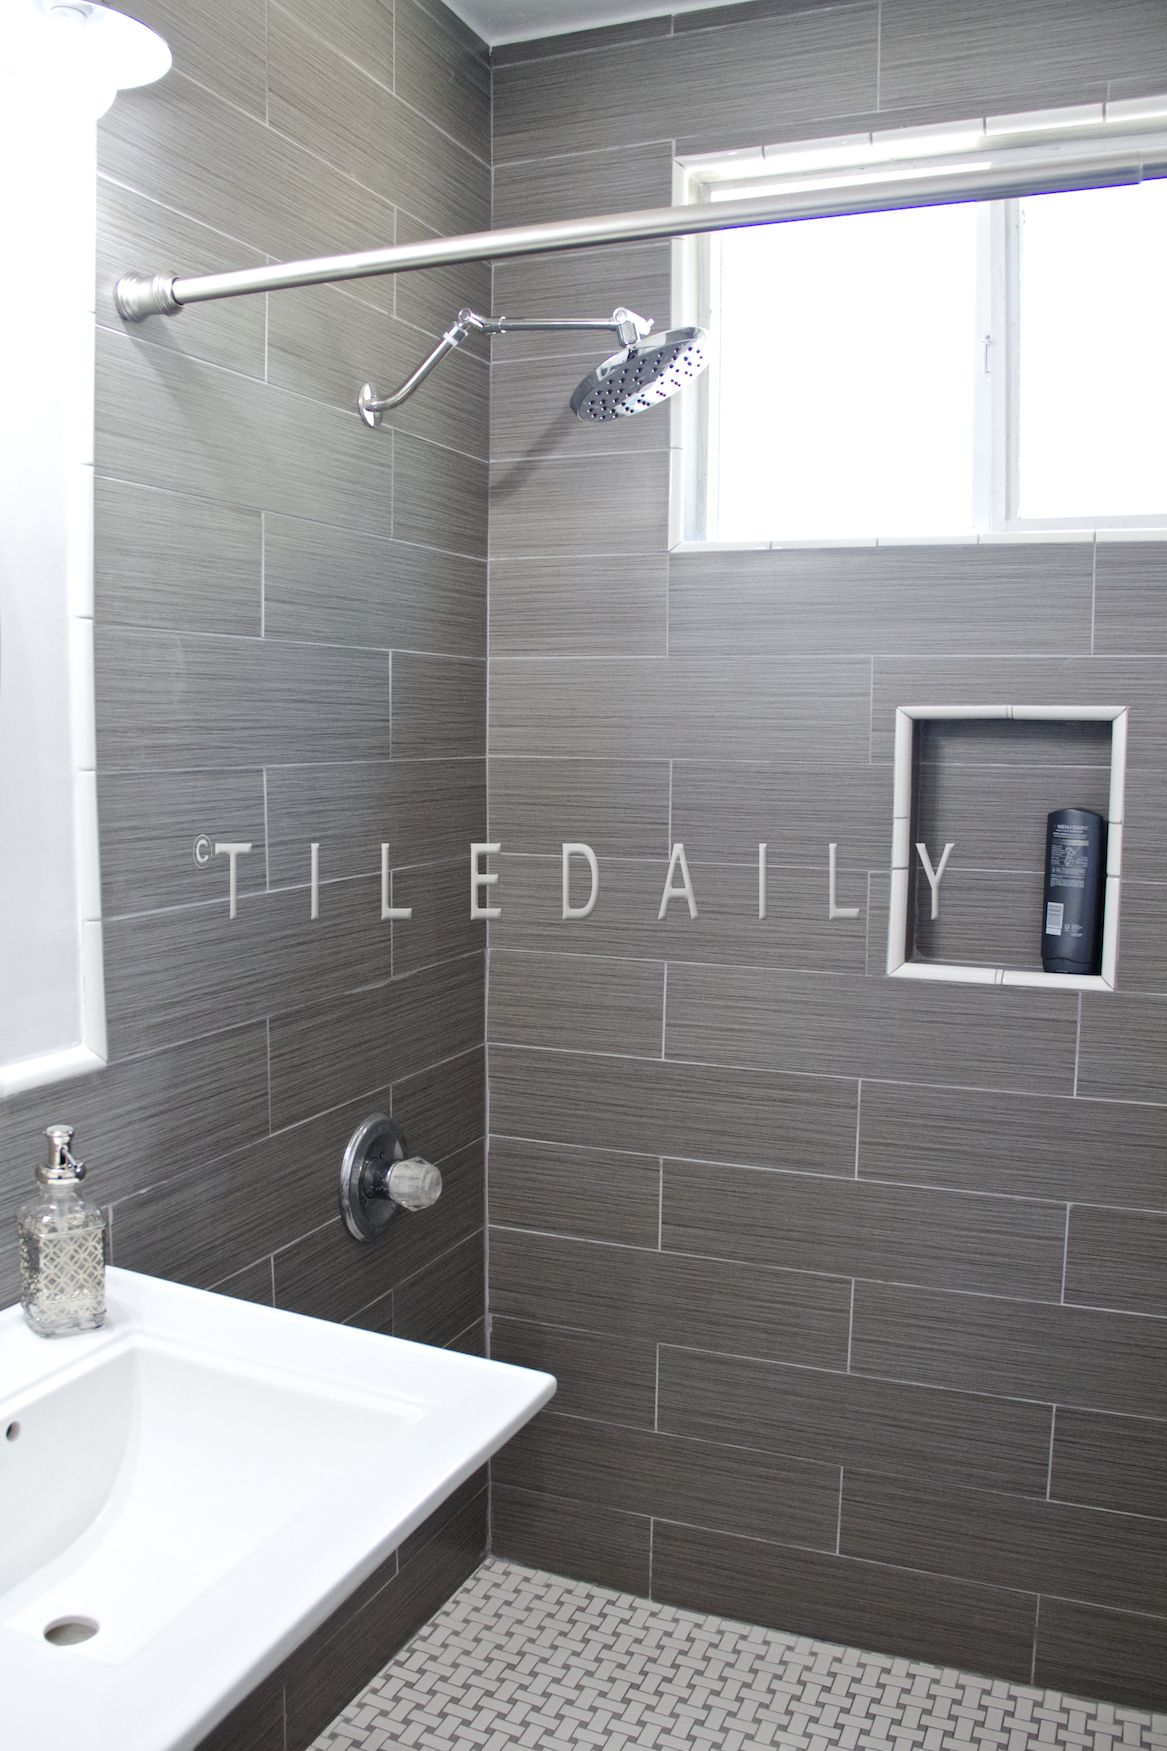 Nice Bathroom Install, Los Angeles, CA U2013 Tiledaily Simple Bathroom Designs,  Bathroom Ideas,